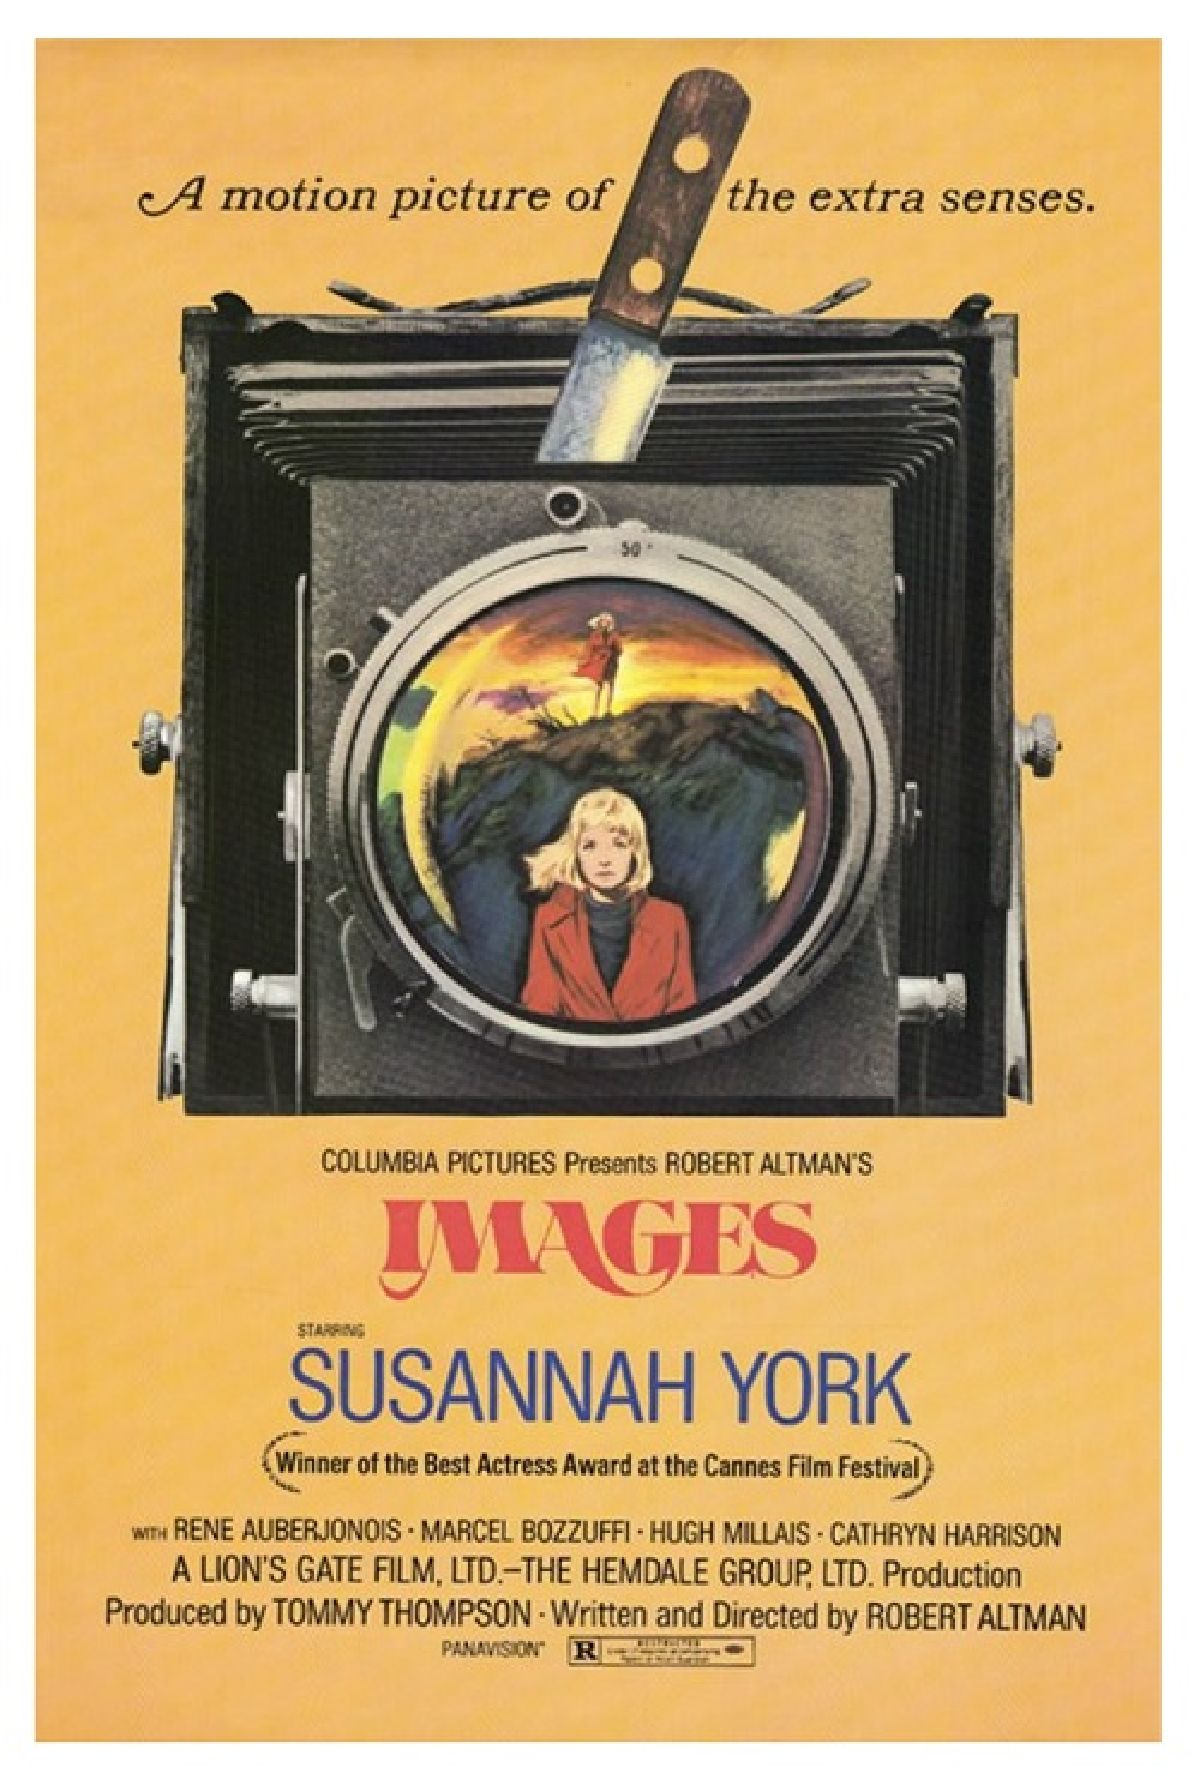 'Images' movie poster